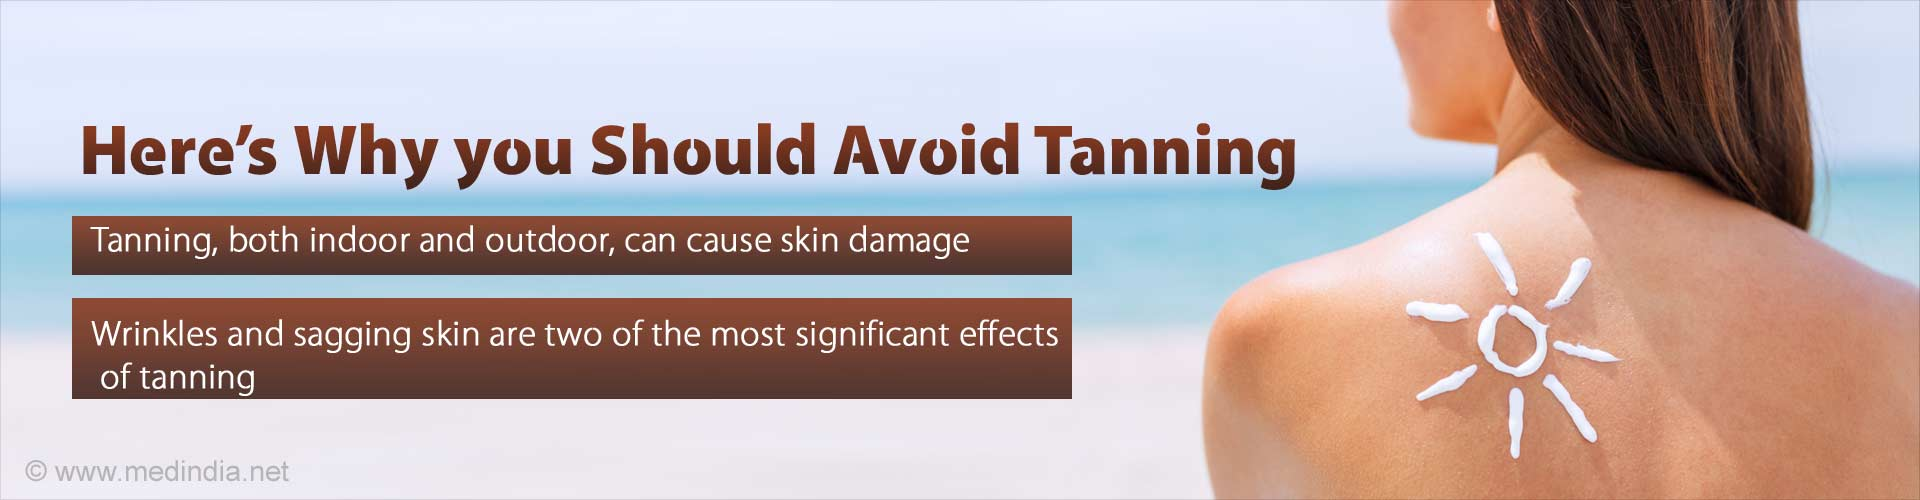 Here's why you should avoid tanning